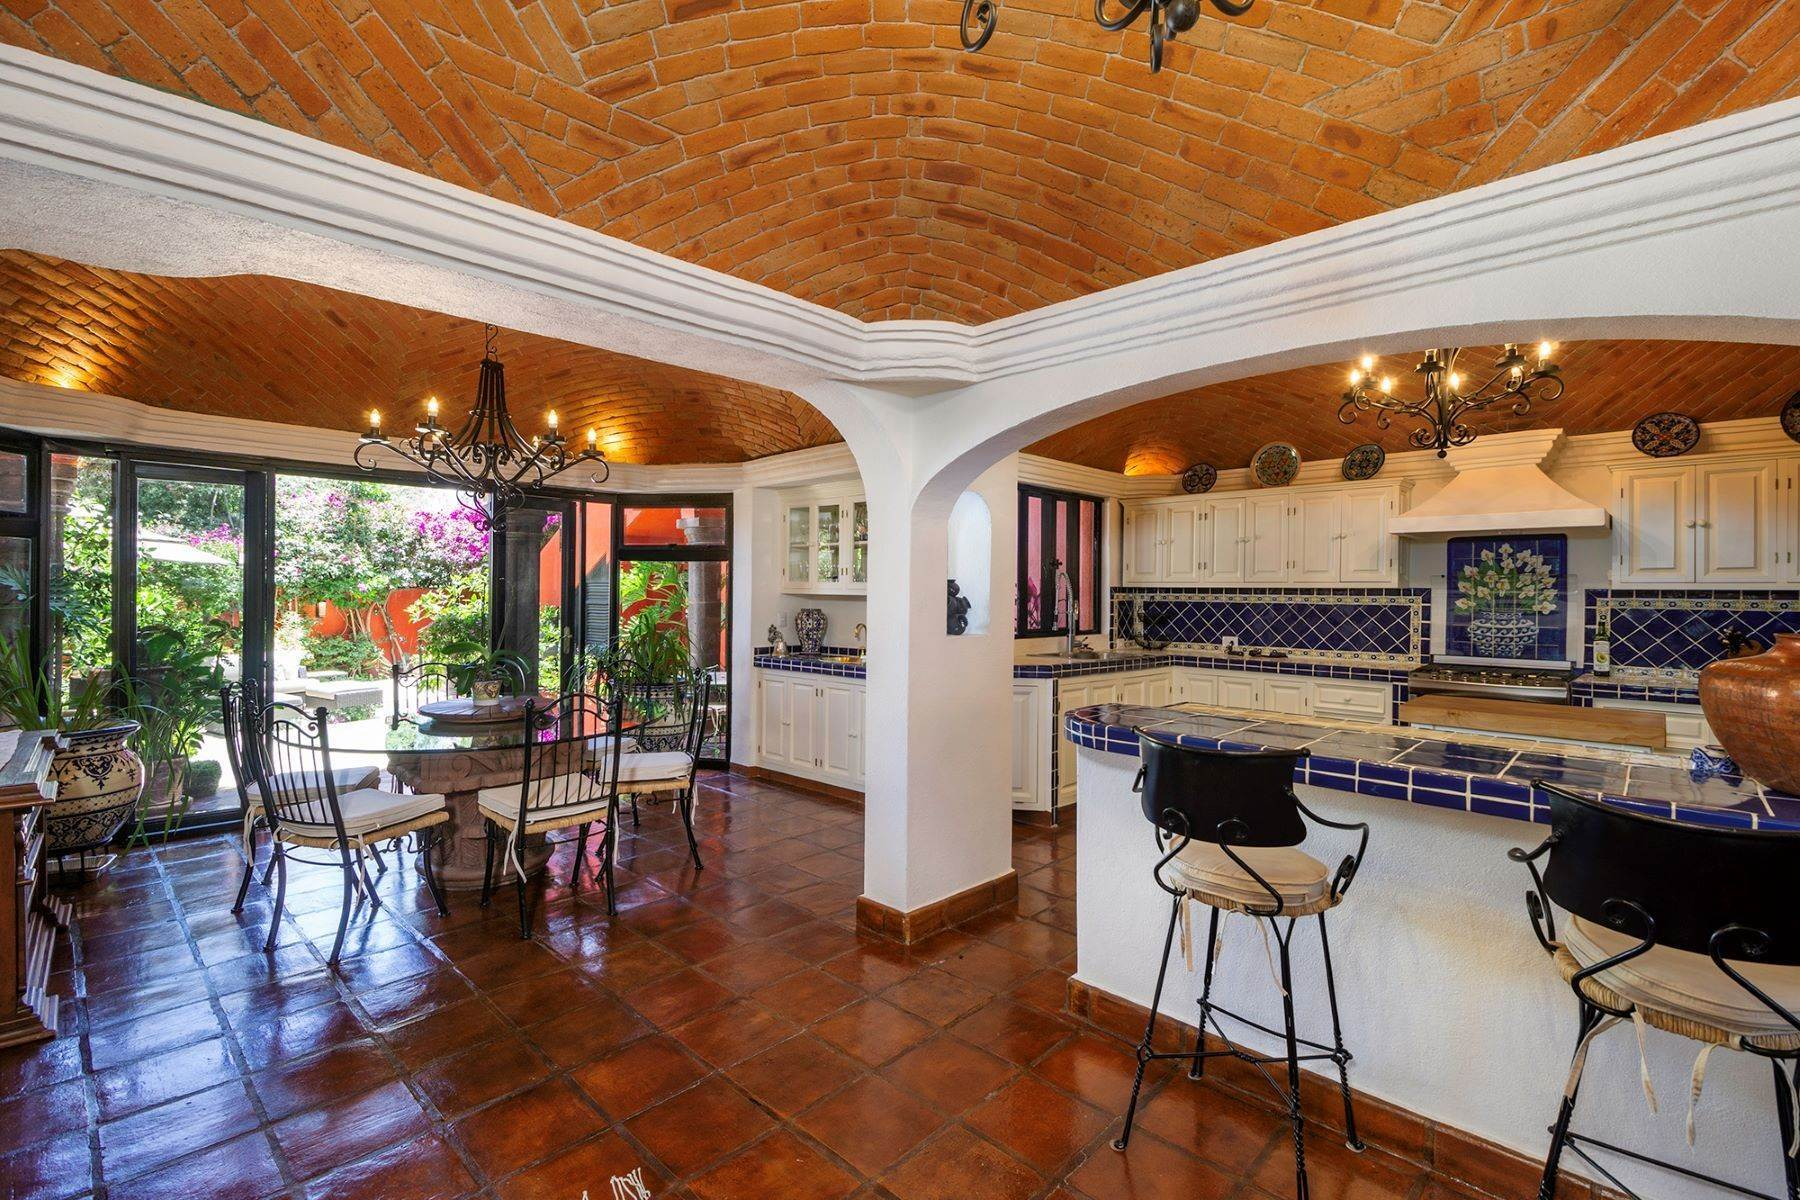 Property for Sale at Casa Bovedas Allende, San Miguel De Allende, Guanajuato Mexico